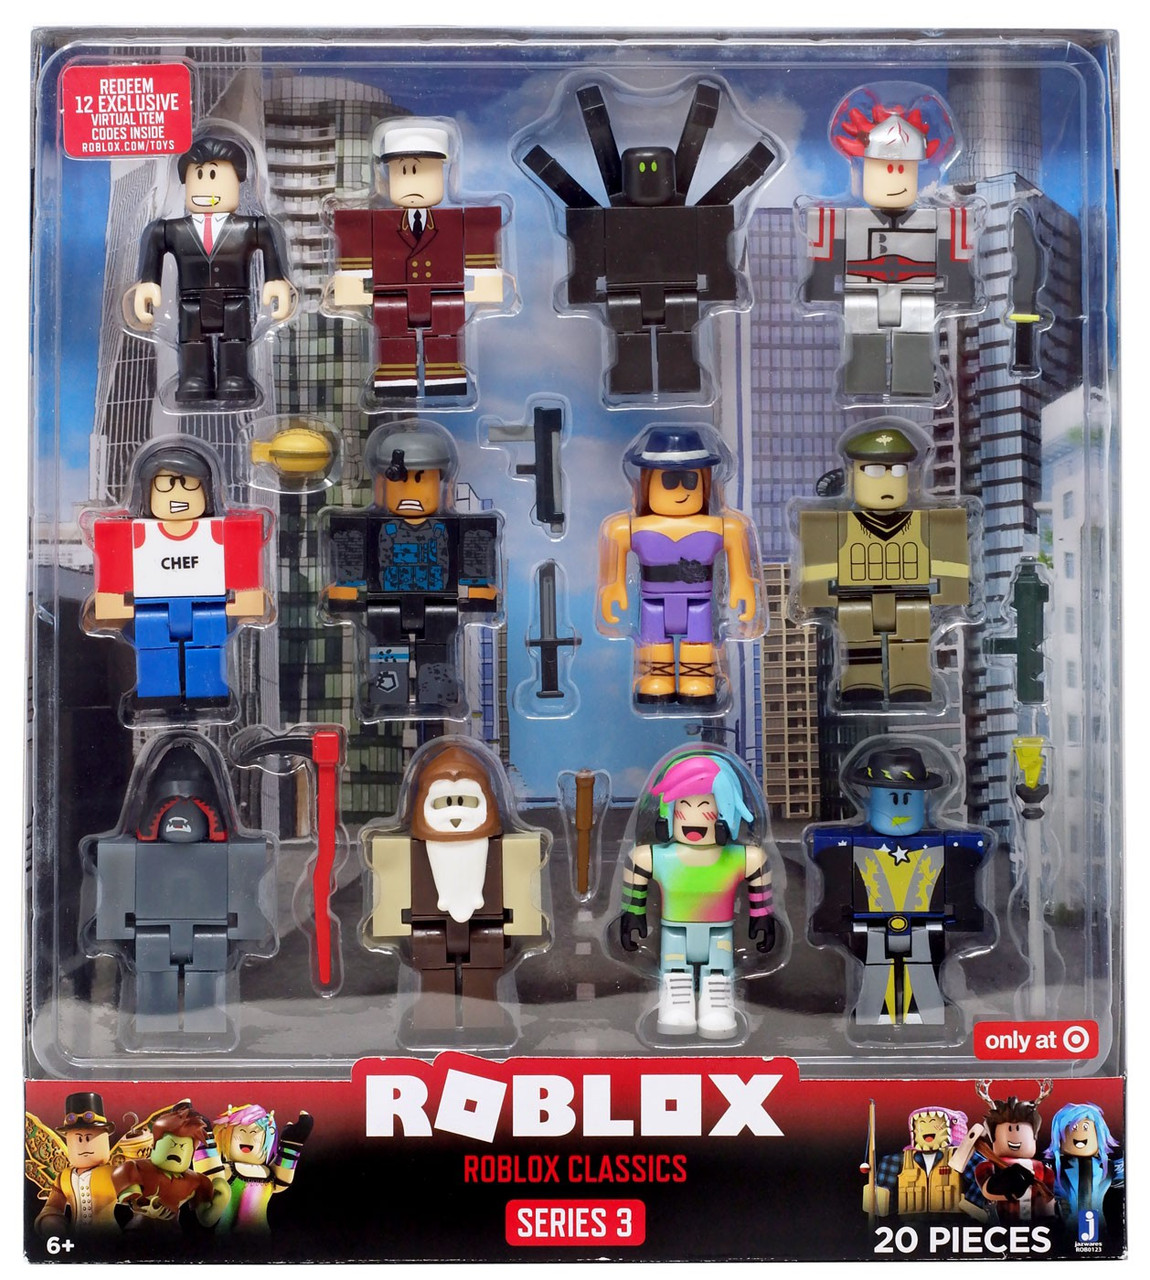 Roblox Series 3 Patient Zero Mini Figure Without Code No Packaging - Series 3 Roblox Classics Exclusive Action Figure 12 Pack